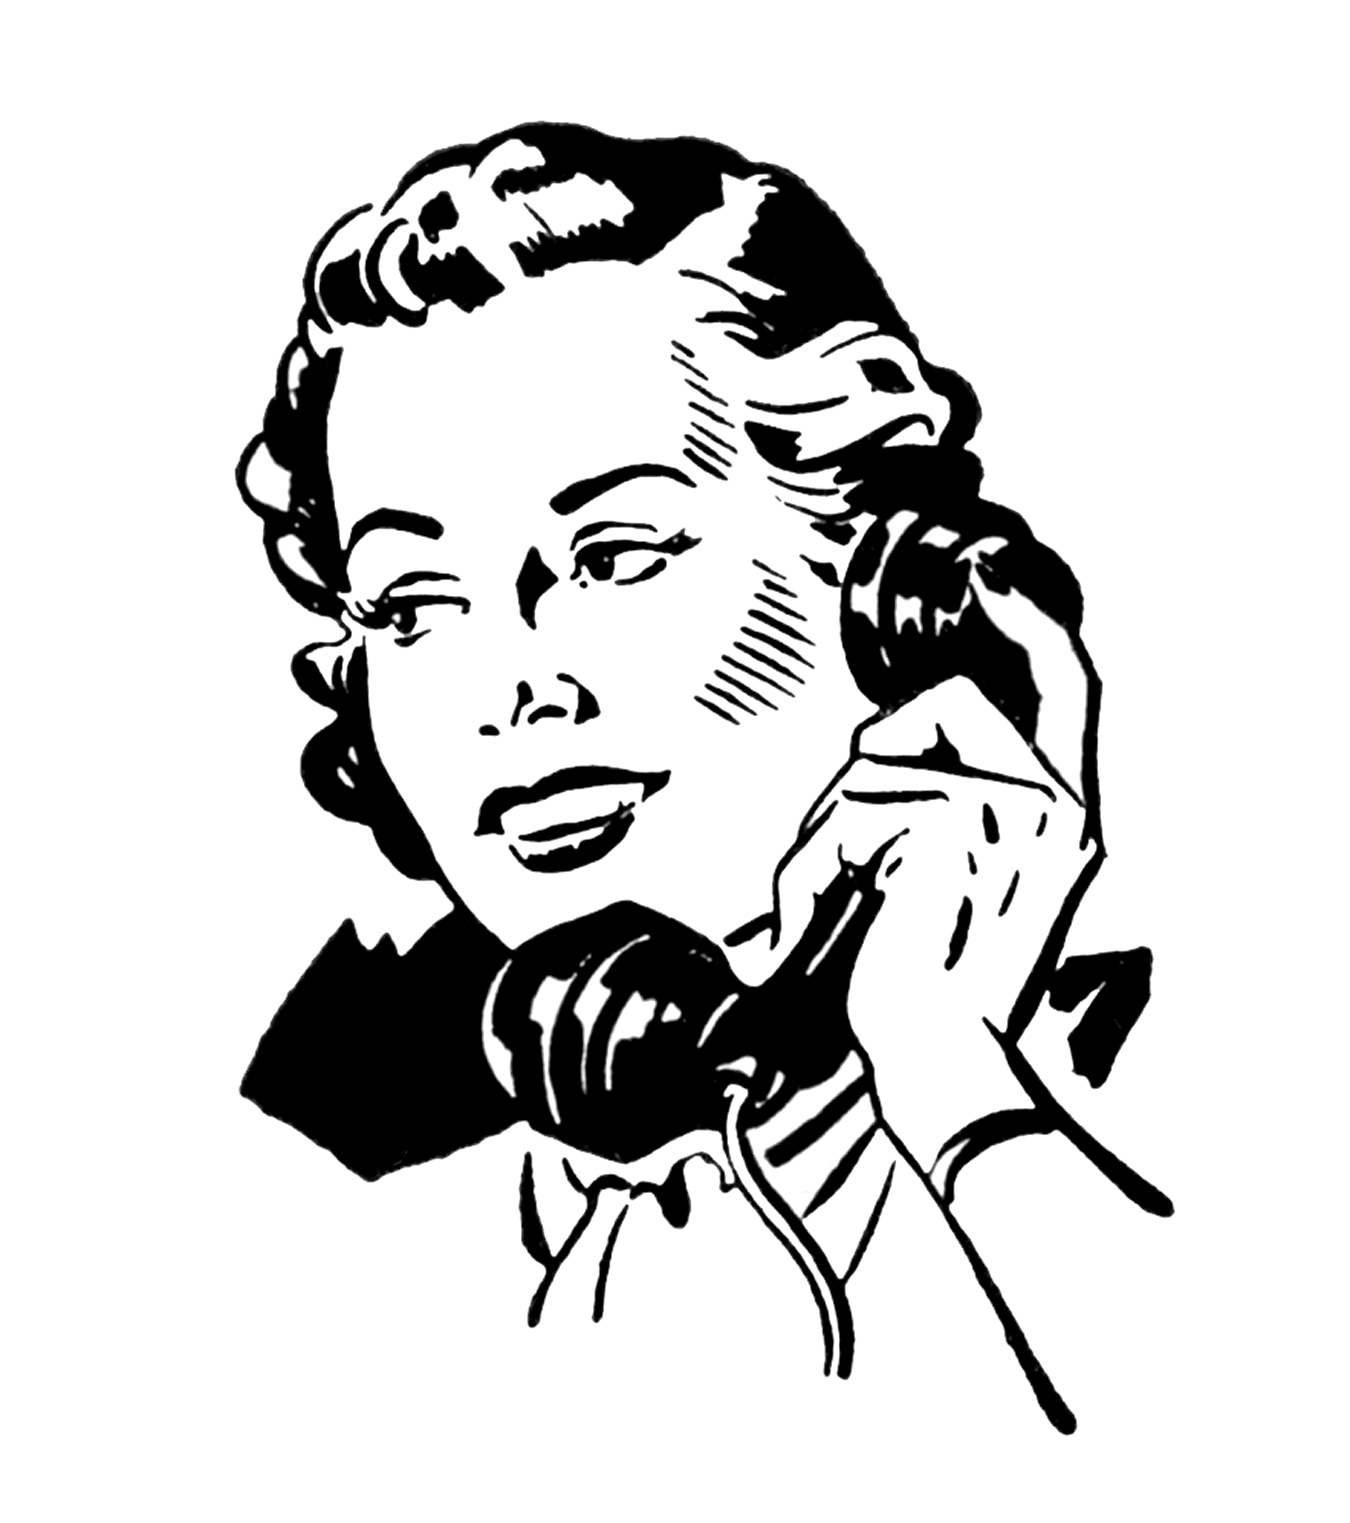 Black and white clipart to talk on the phone jpg freeuse stock 7 Vintage Telephone Images! - The Graphics Fairy jpg freeuse stock